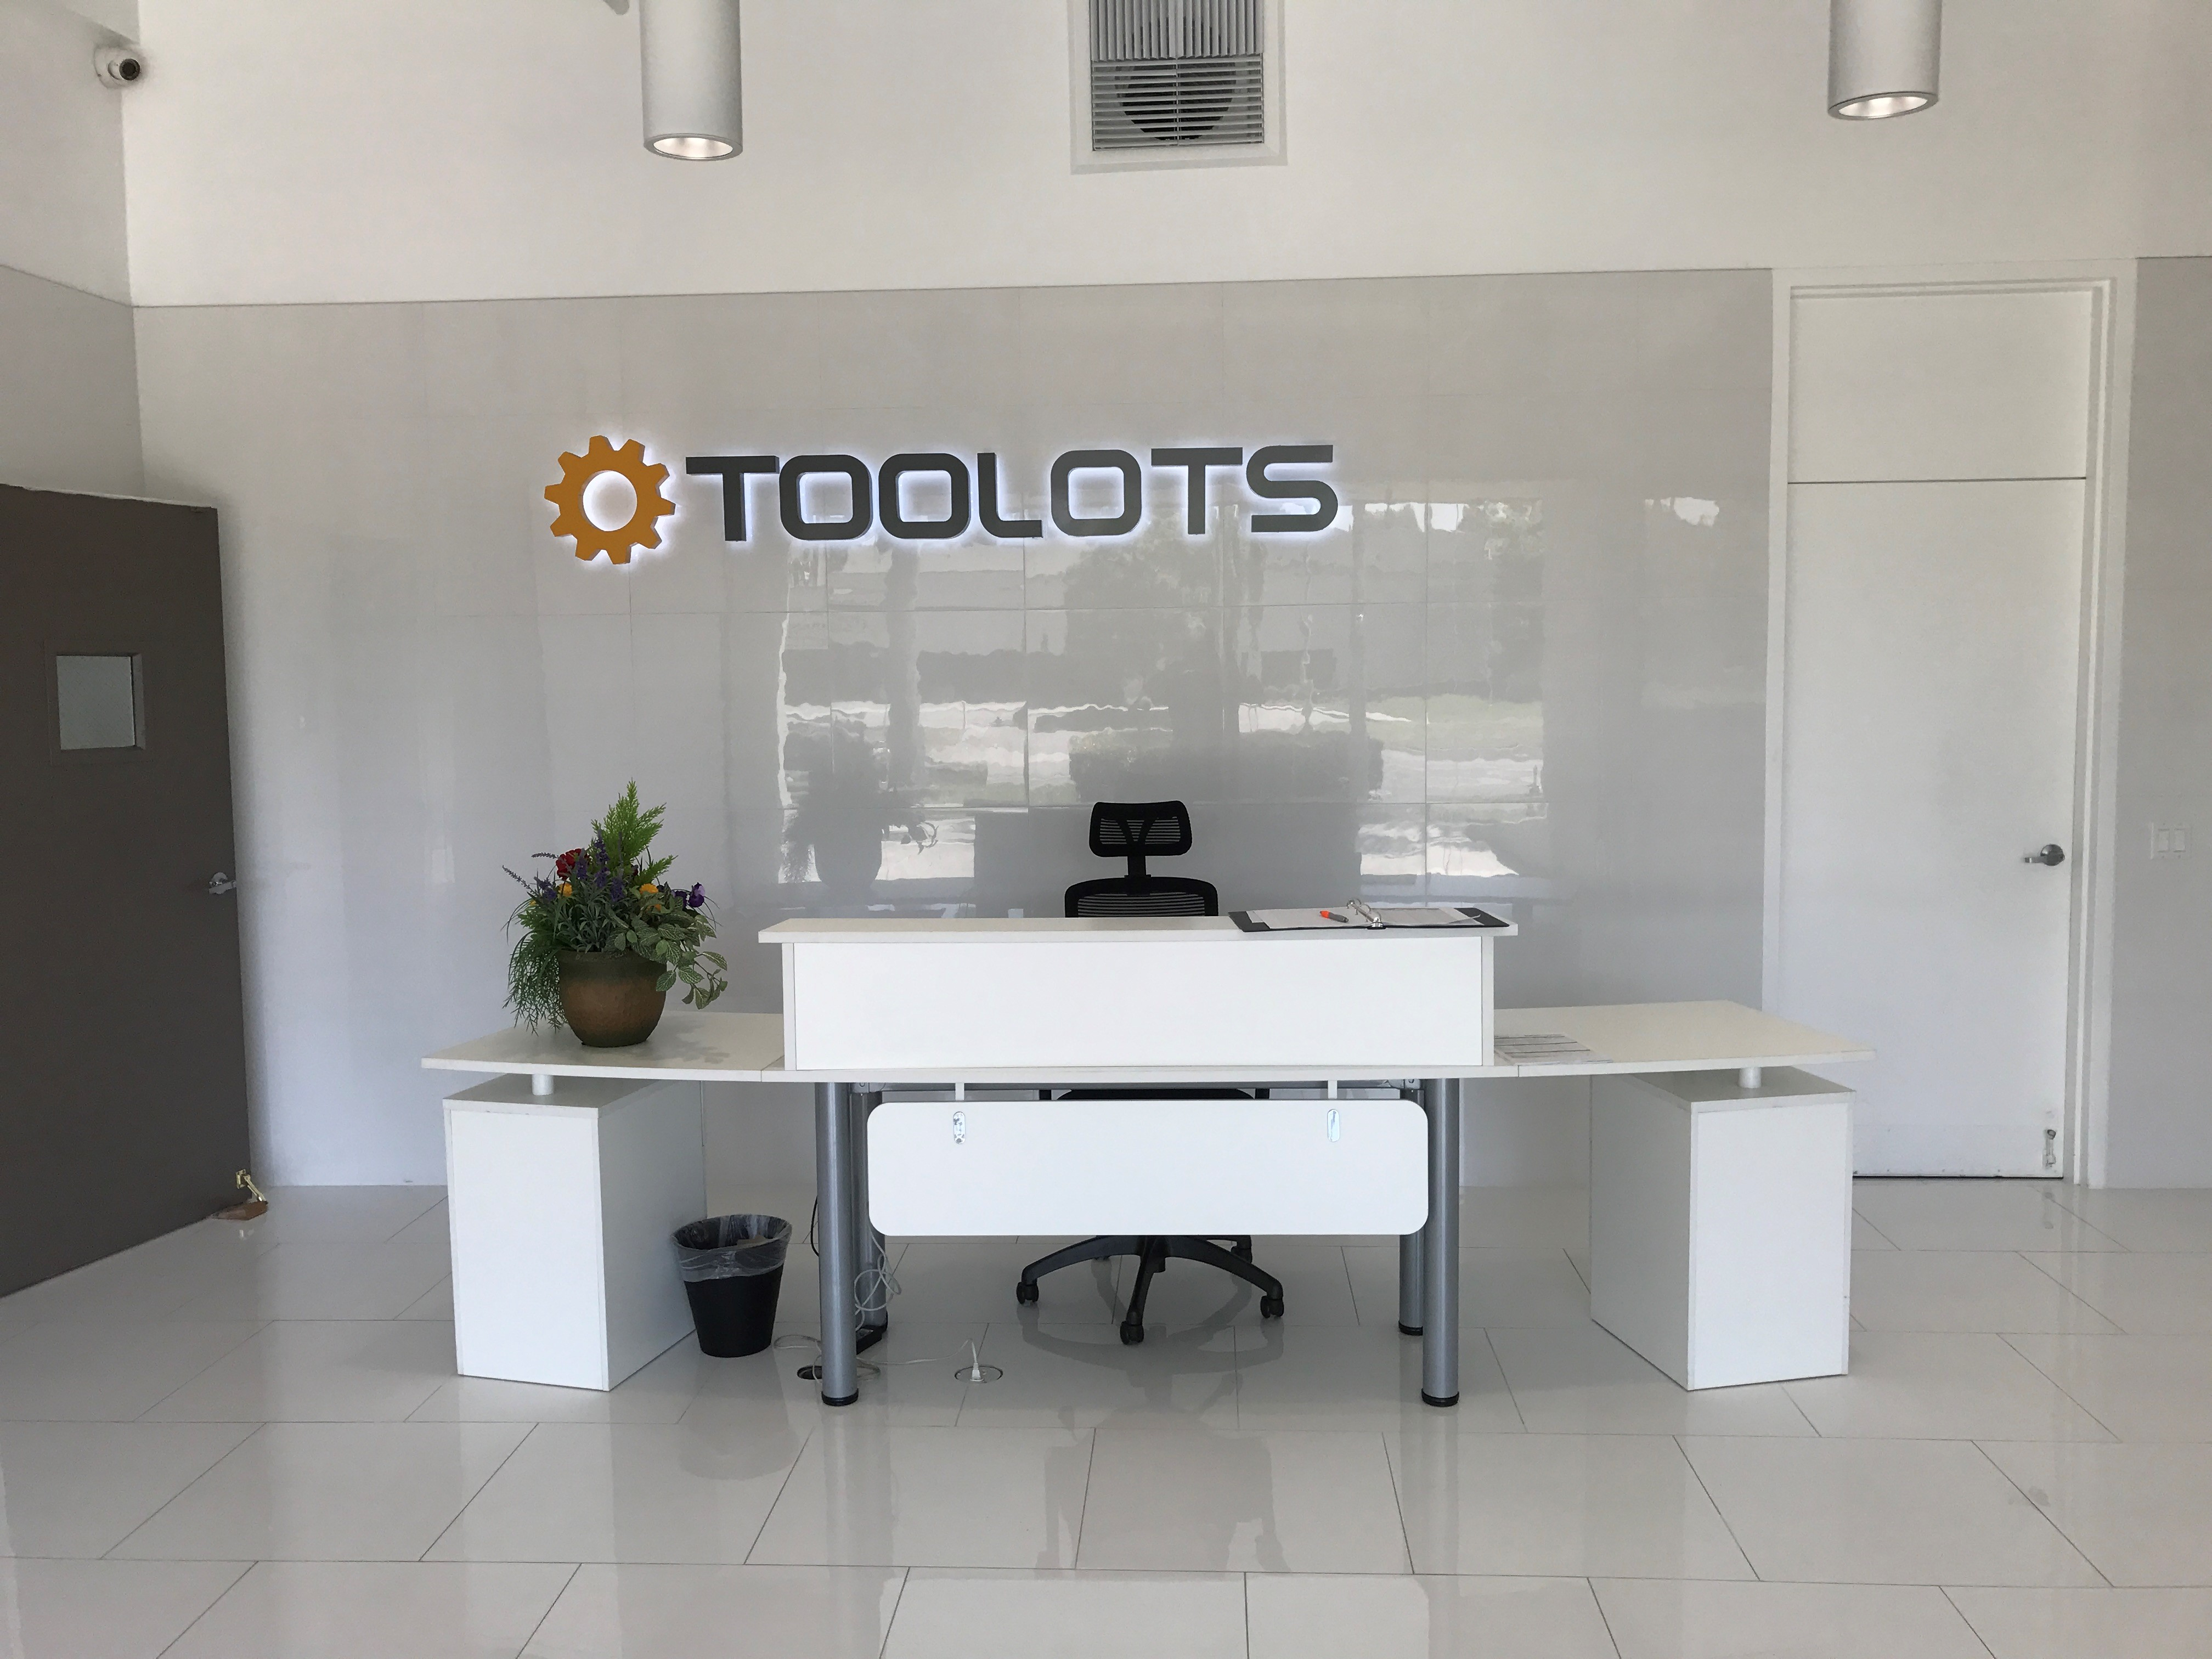 Toolots image 5